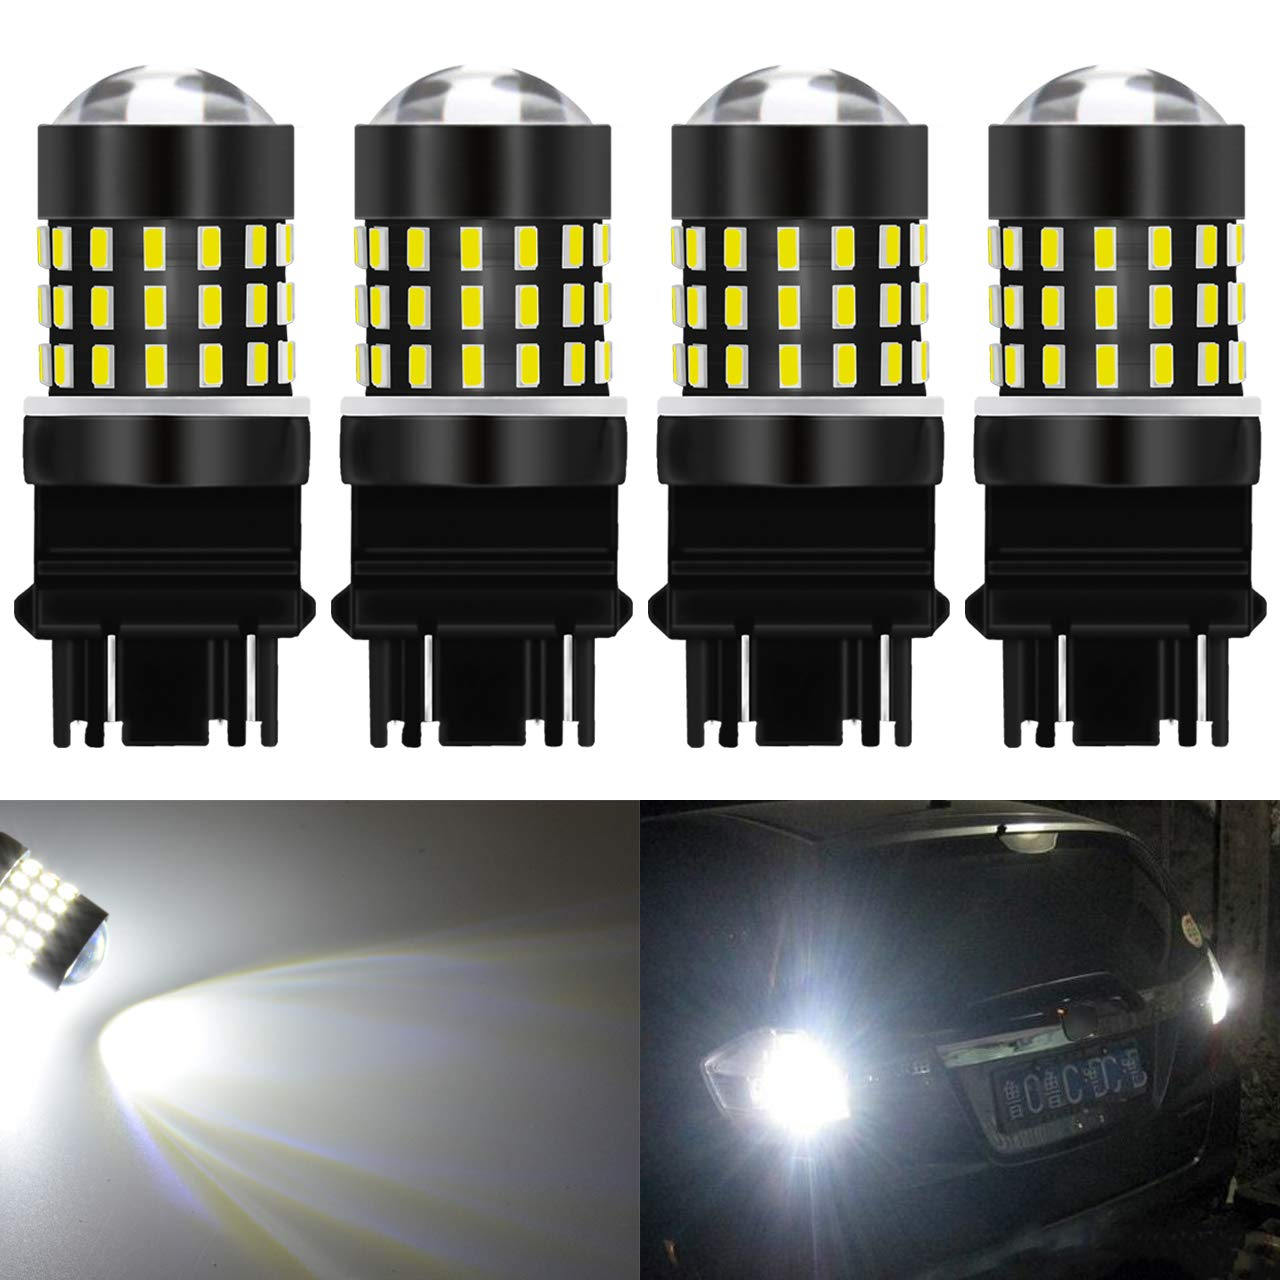 KaTur 4pcs Super Bright 3157 3047 3057 3057A 3155 3014 54SMD Lens LED Replacement Bulbs Turn Brake Signal Tail Back Up Stop Parking RV Lights 3.1W DC 12V Red